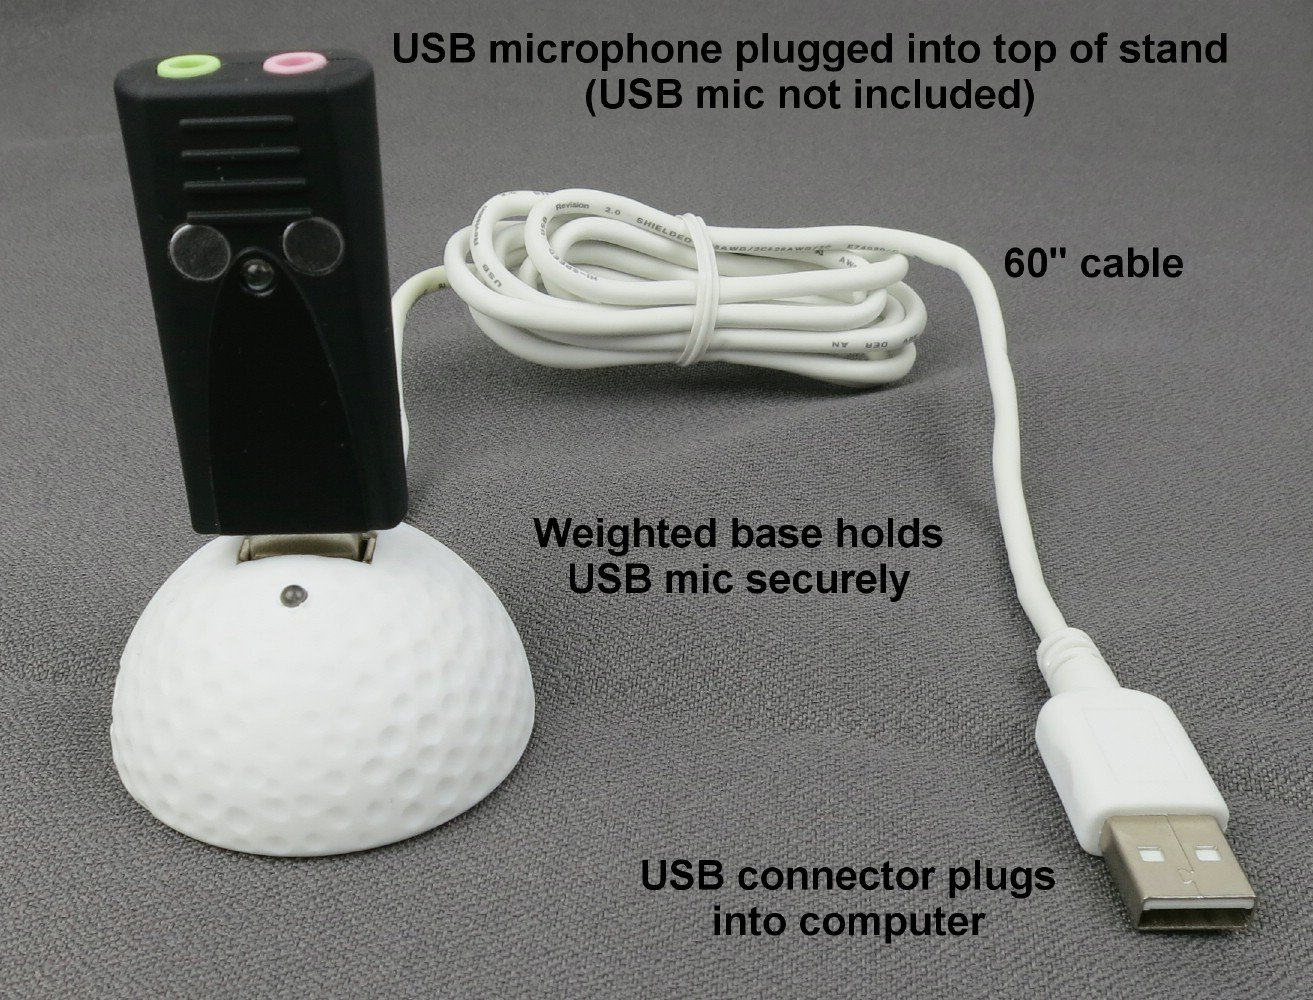 SP-USB-DOCK-BALL - Sound Professionals - Weighted USB Microphone Holder with 5 Foot USB Extension Cable - Black.